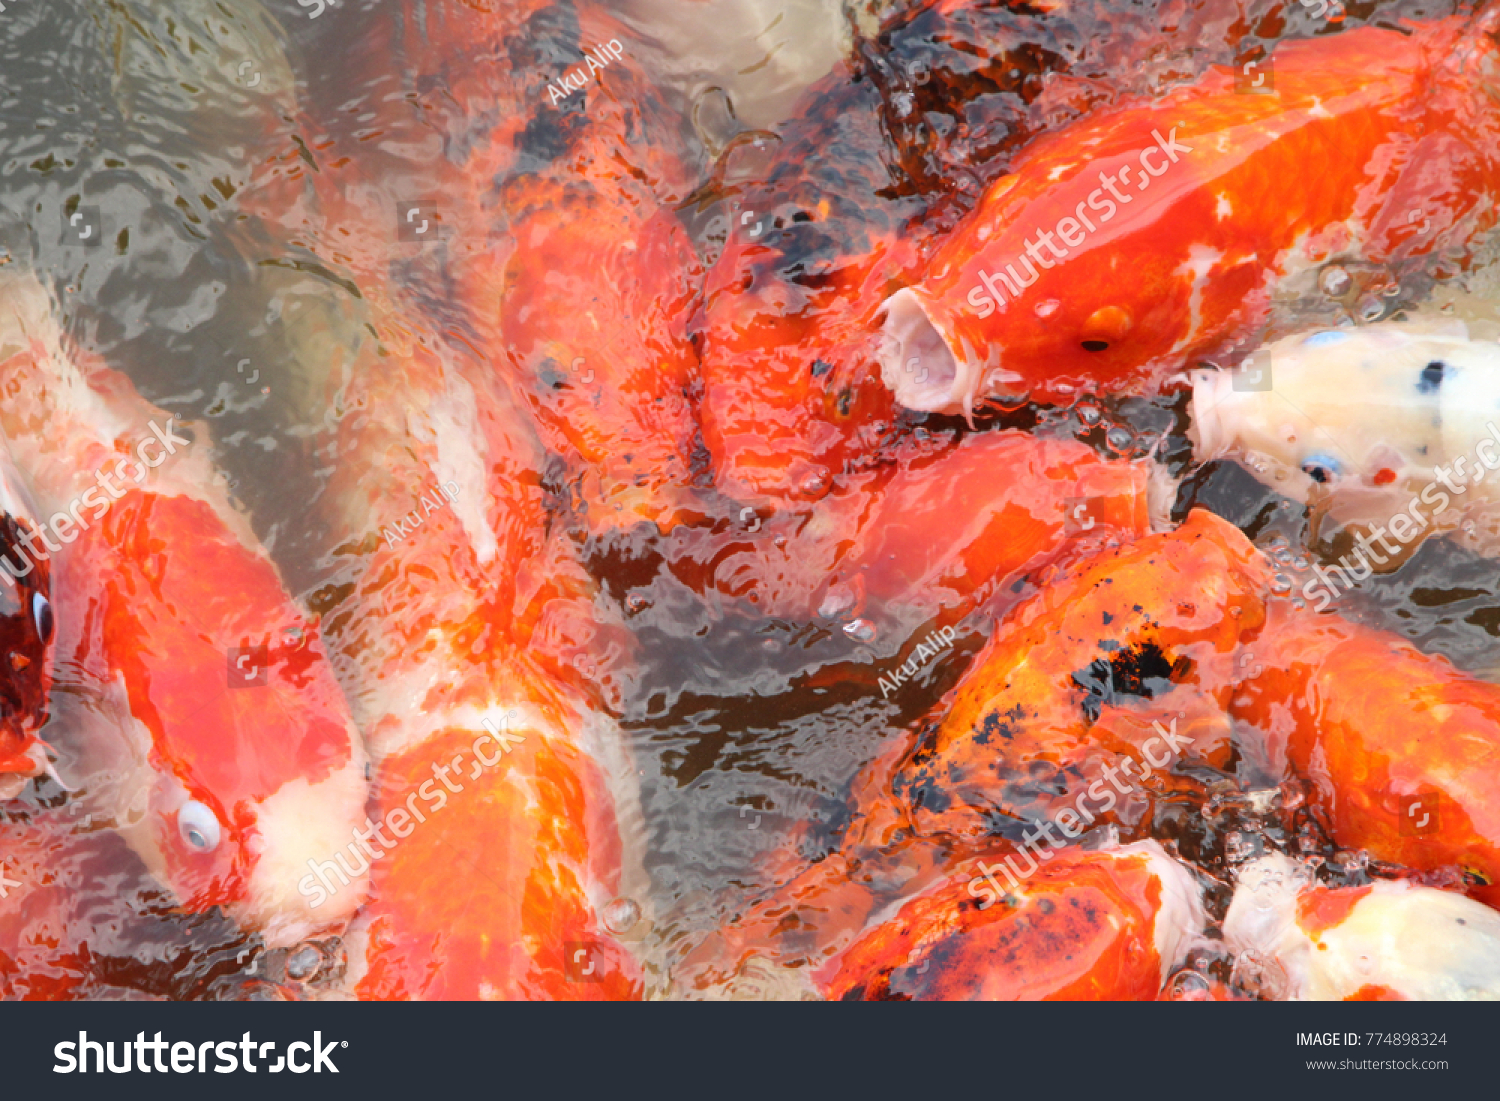 Colorful Koi Fish Pond Feeding Stock Photo (Royalty Free) 774898324 ...